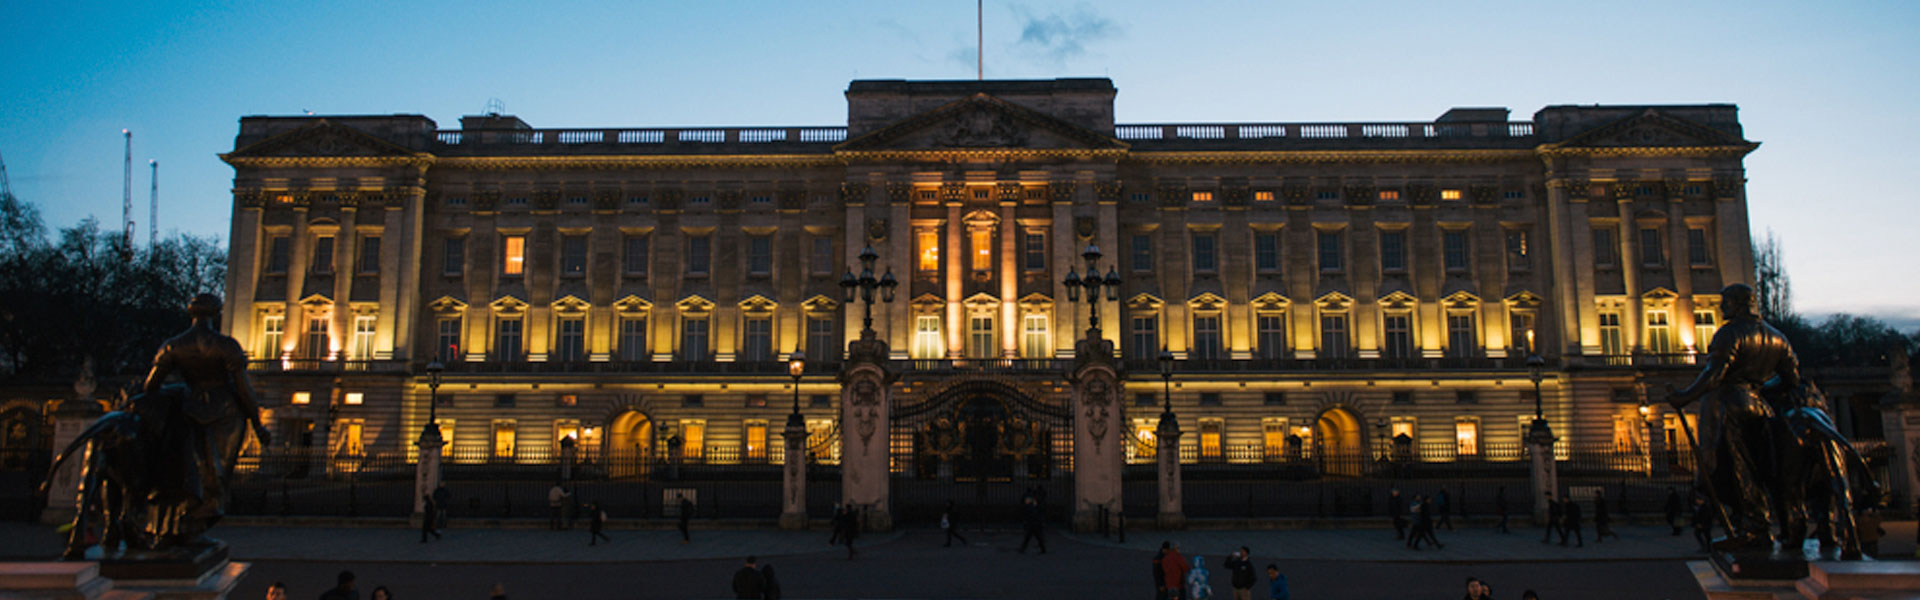 View of Buckingham Palace at Dusk